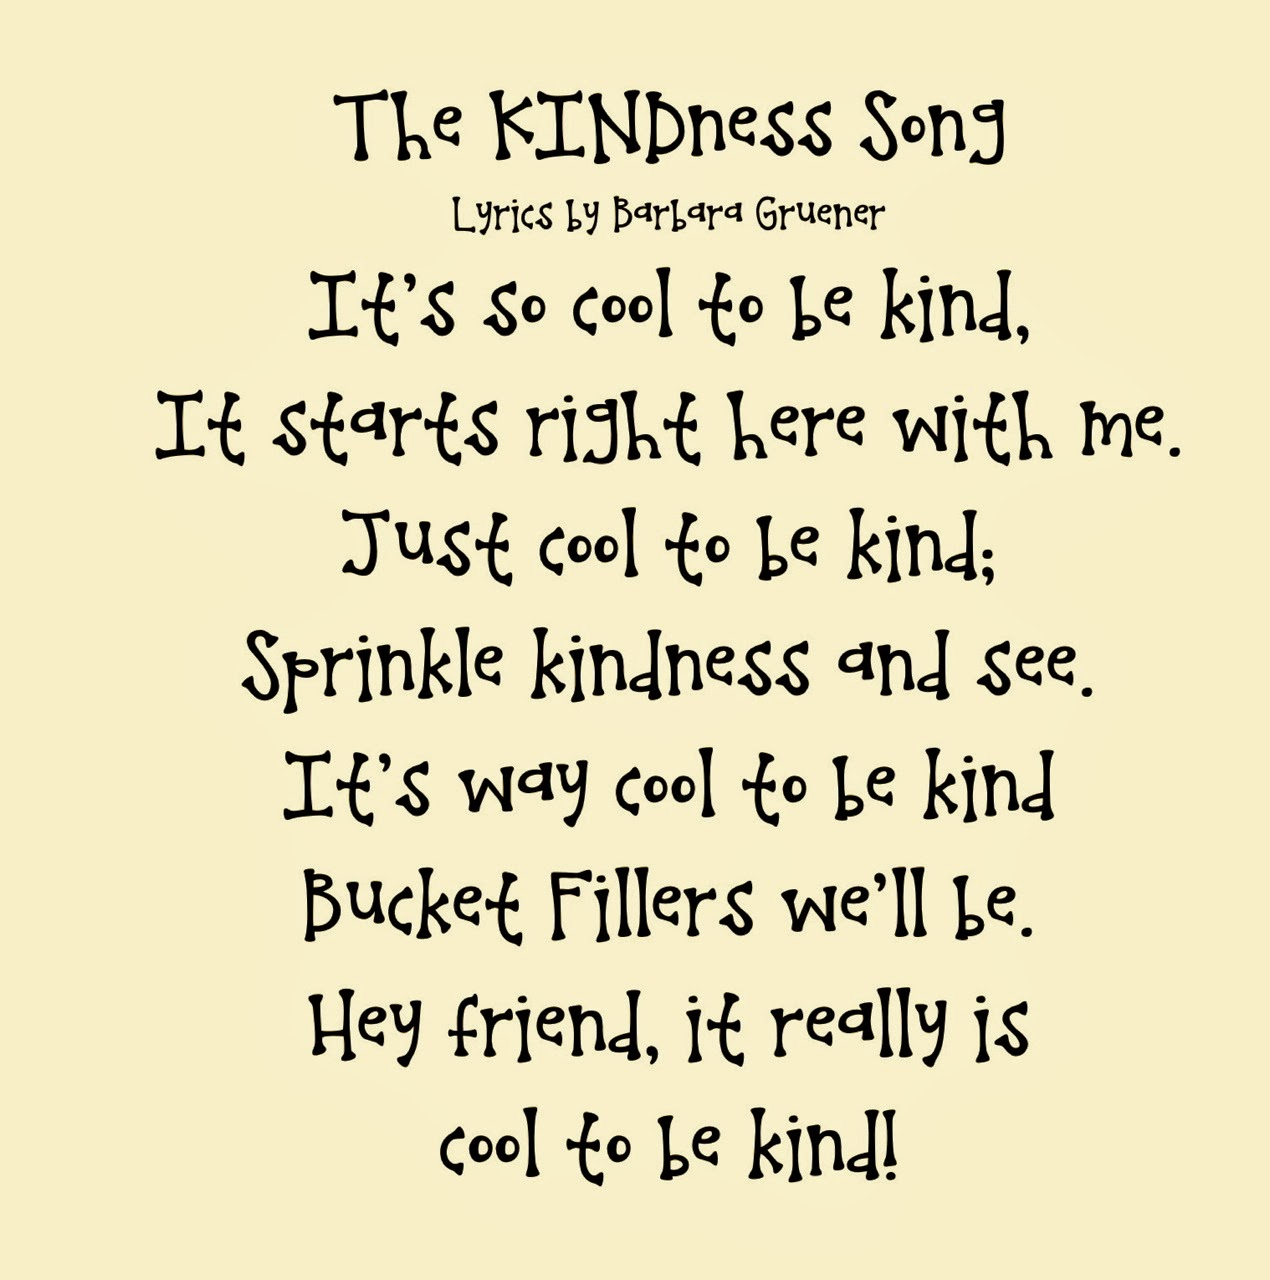 Popular songs about kindness